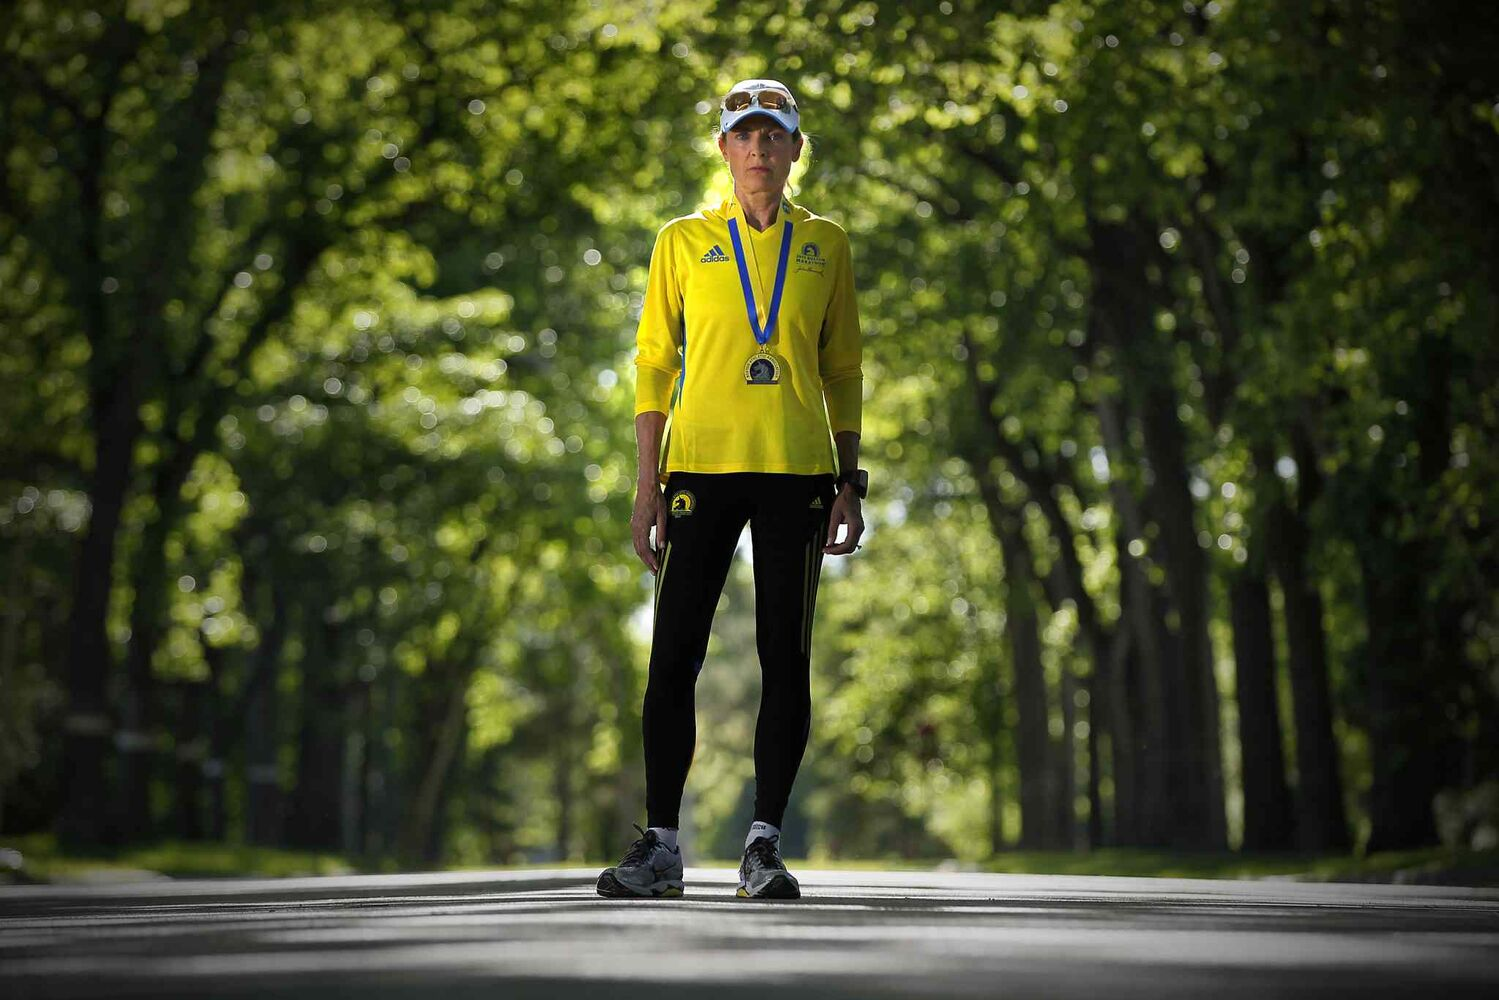 Melanie Sifton, a marathoner who finished a few minutes before the bombs went off in Boston, is photographed on Wellington Crescent June 11, 2013.